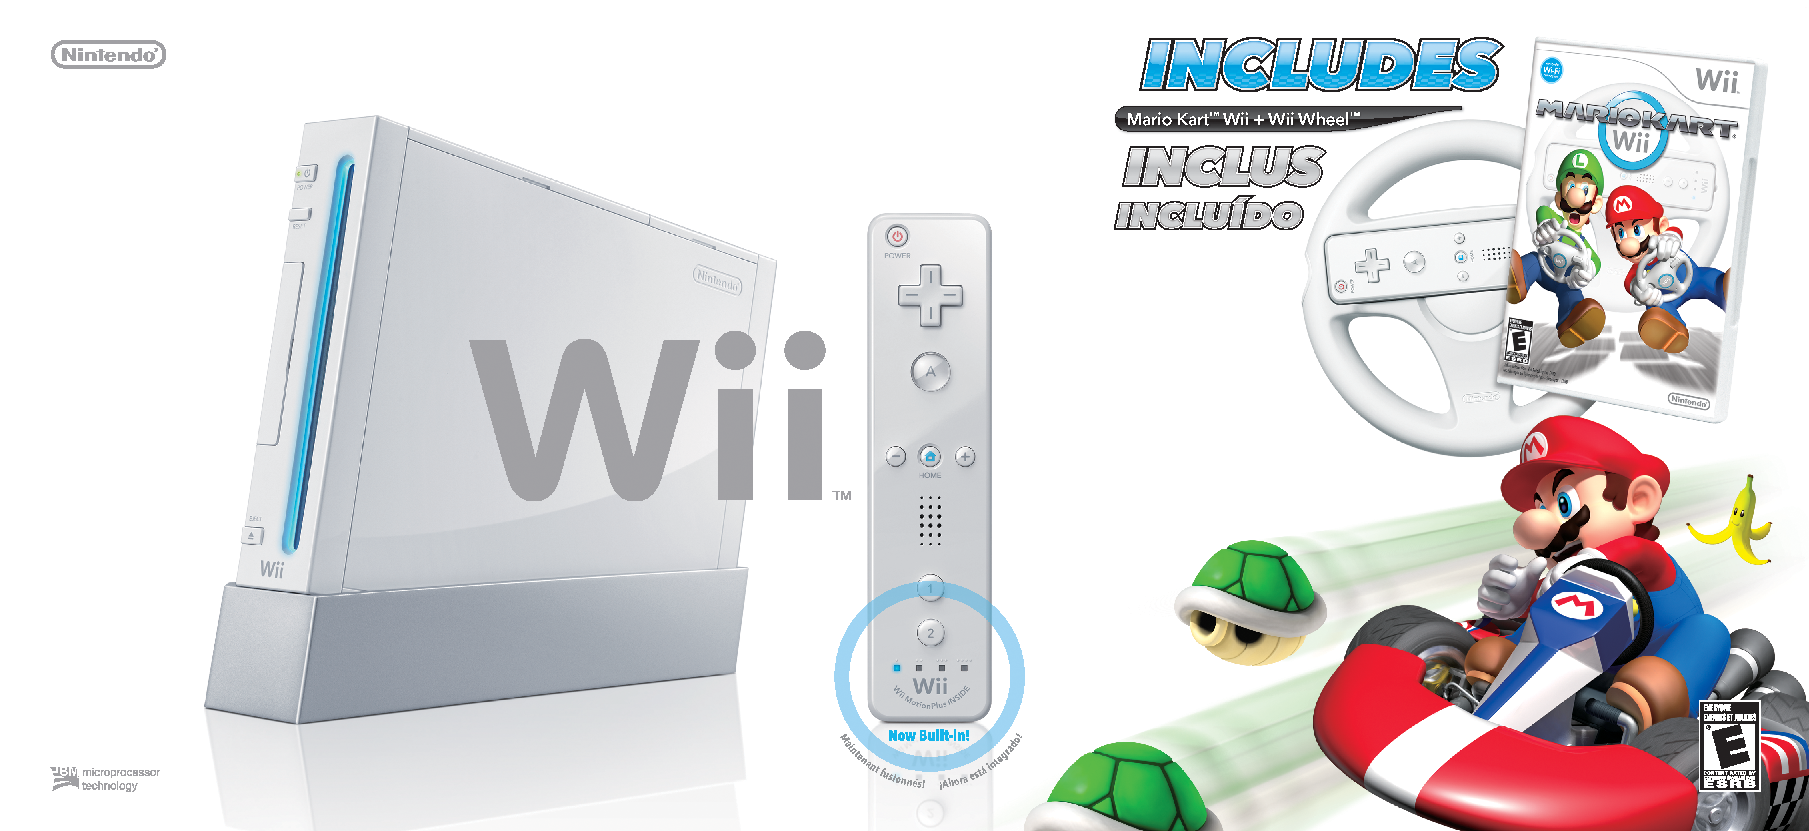 nintendo s new strategic approach a wii case study Microsoft introduced the new xbox 360 using a direct-to-consumer approach  probably long before sony or nintendo's new devices  xbox 360 marketing strategy.